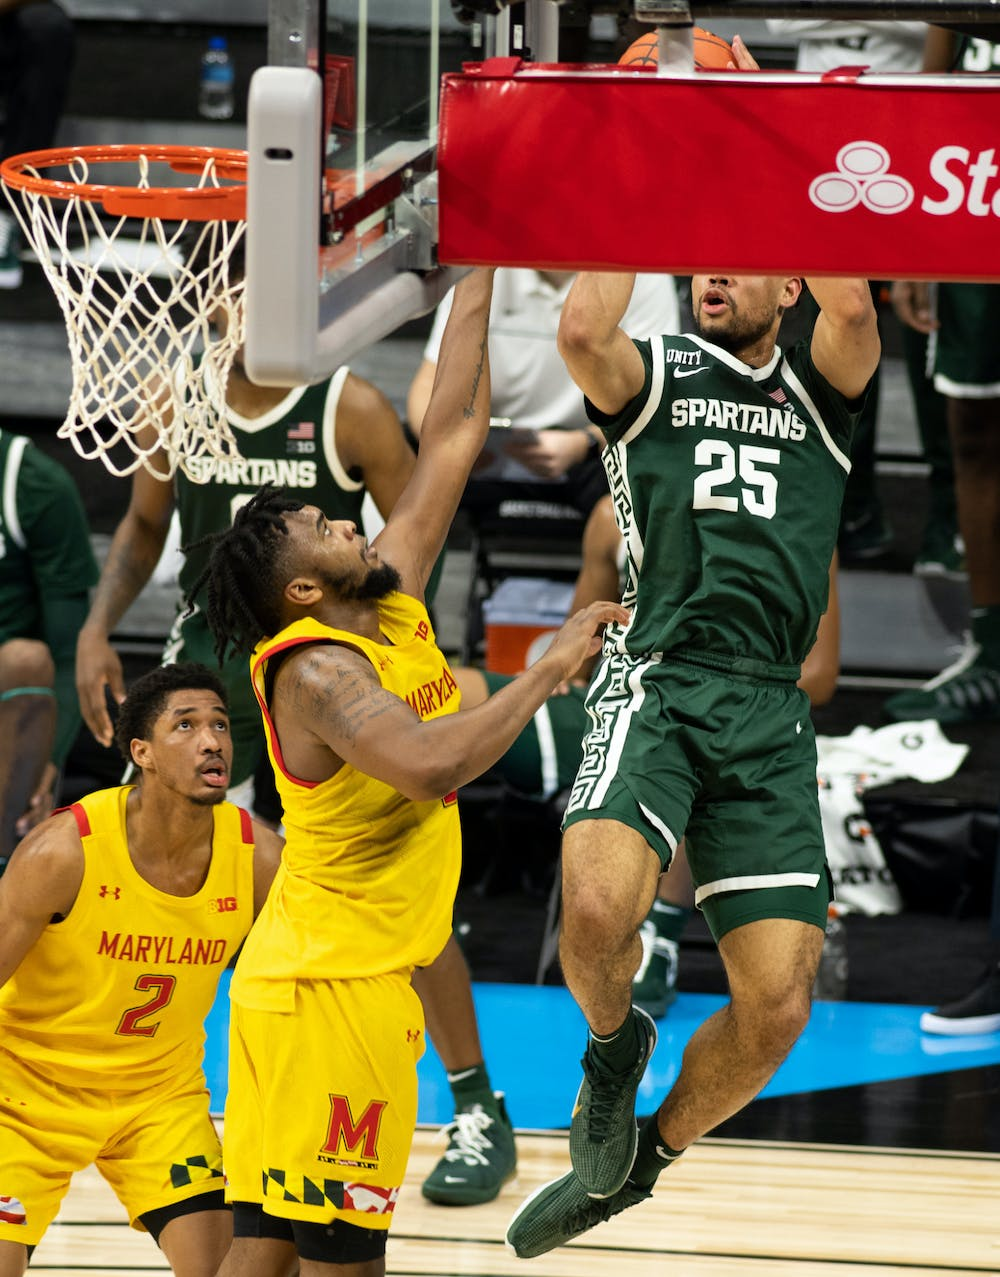 MSU forward Malik Hall, 25, takes a shot in the Big Ten basketball tournament during a game against Maryland on March 11, 2020.